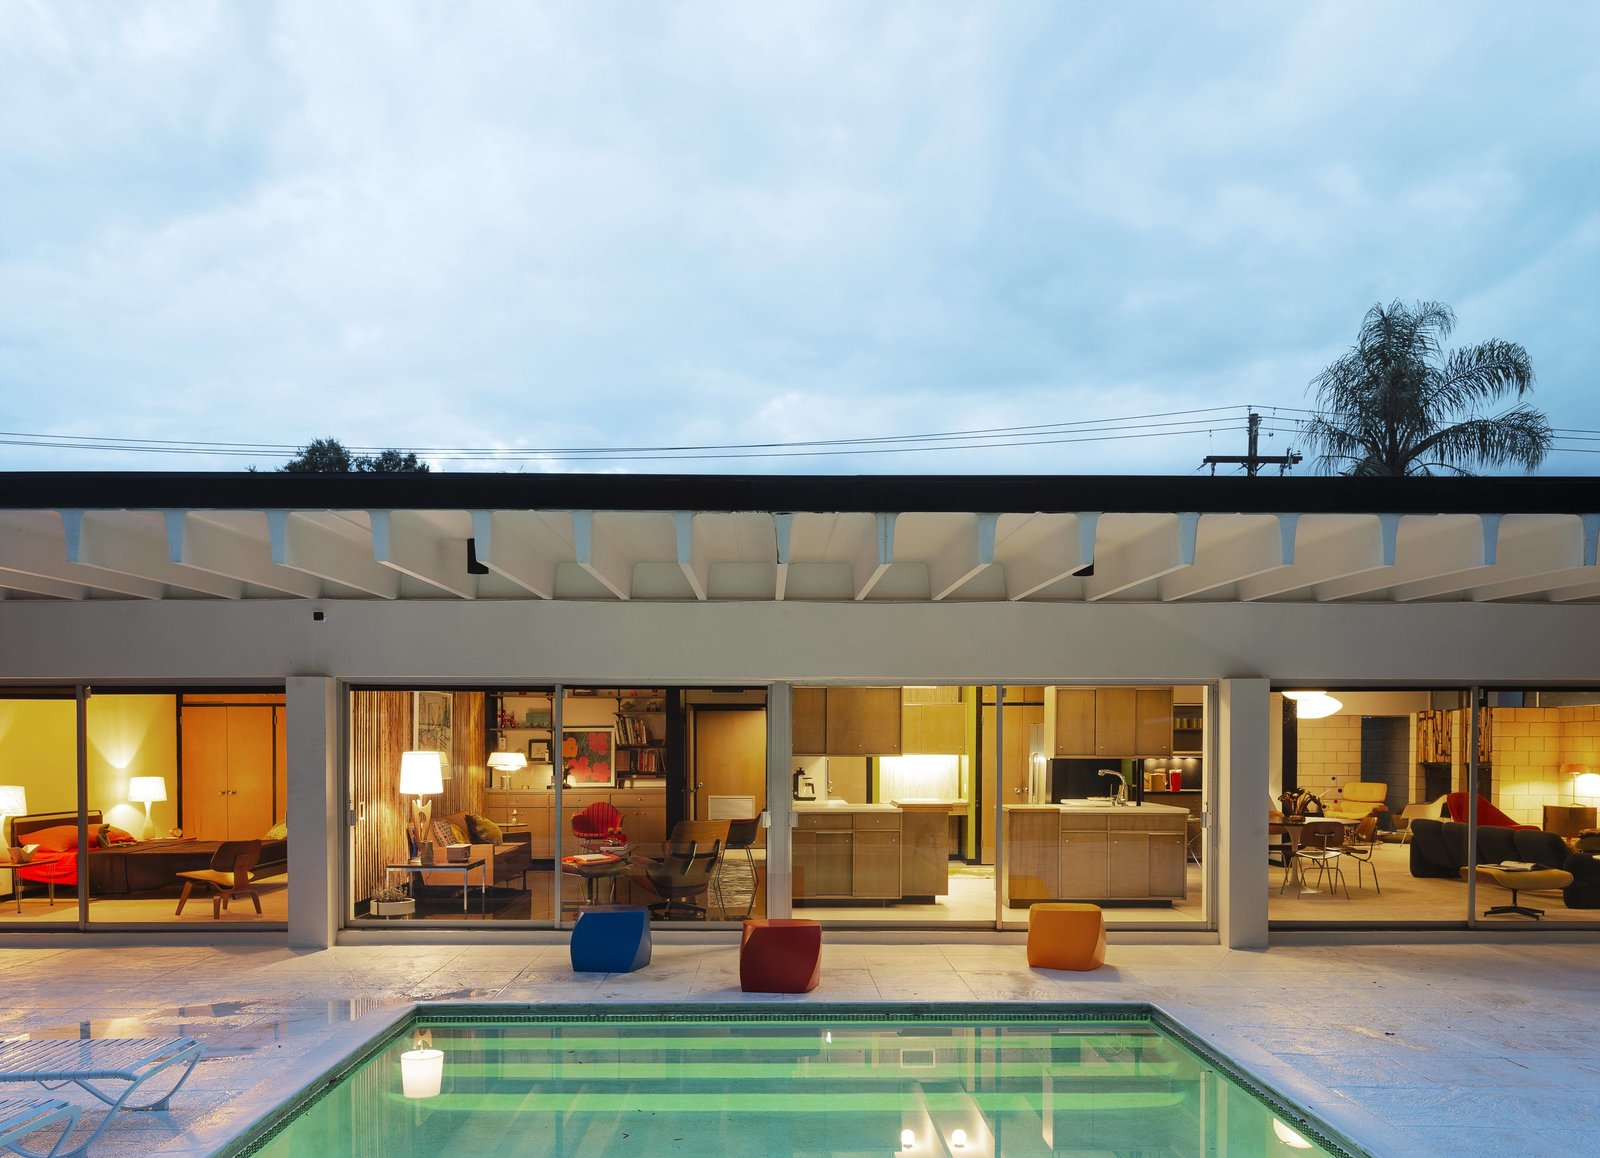 Outdoor, Swimming Pools, Tubs, Shower, Back Yard, and Large Patio, Porch, Deck Gene Leedy's unusually concrete double T construction makes the house stand out on its block, and provides an extended 7 feet of indoor/outdoor living space.  My Photos from My House: Street Artist Flore's Unlikely Midcentury Haven in Florida